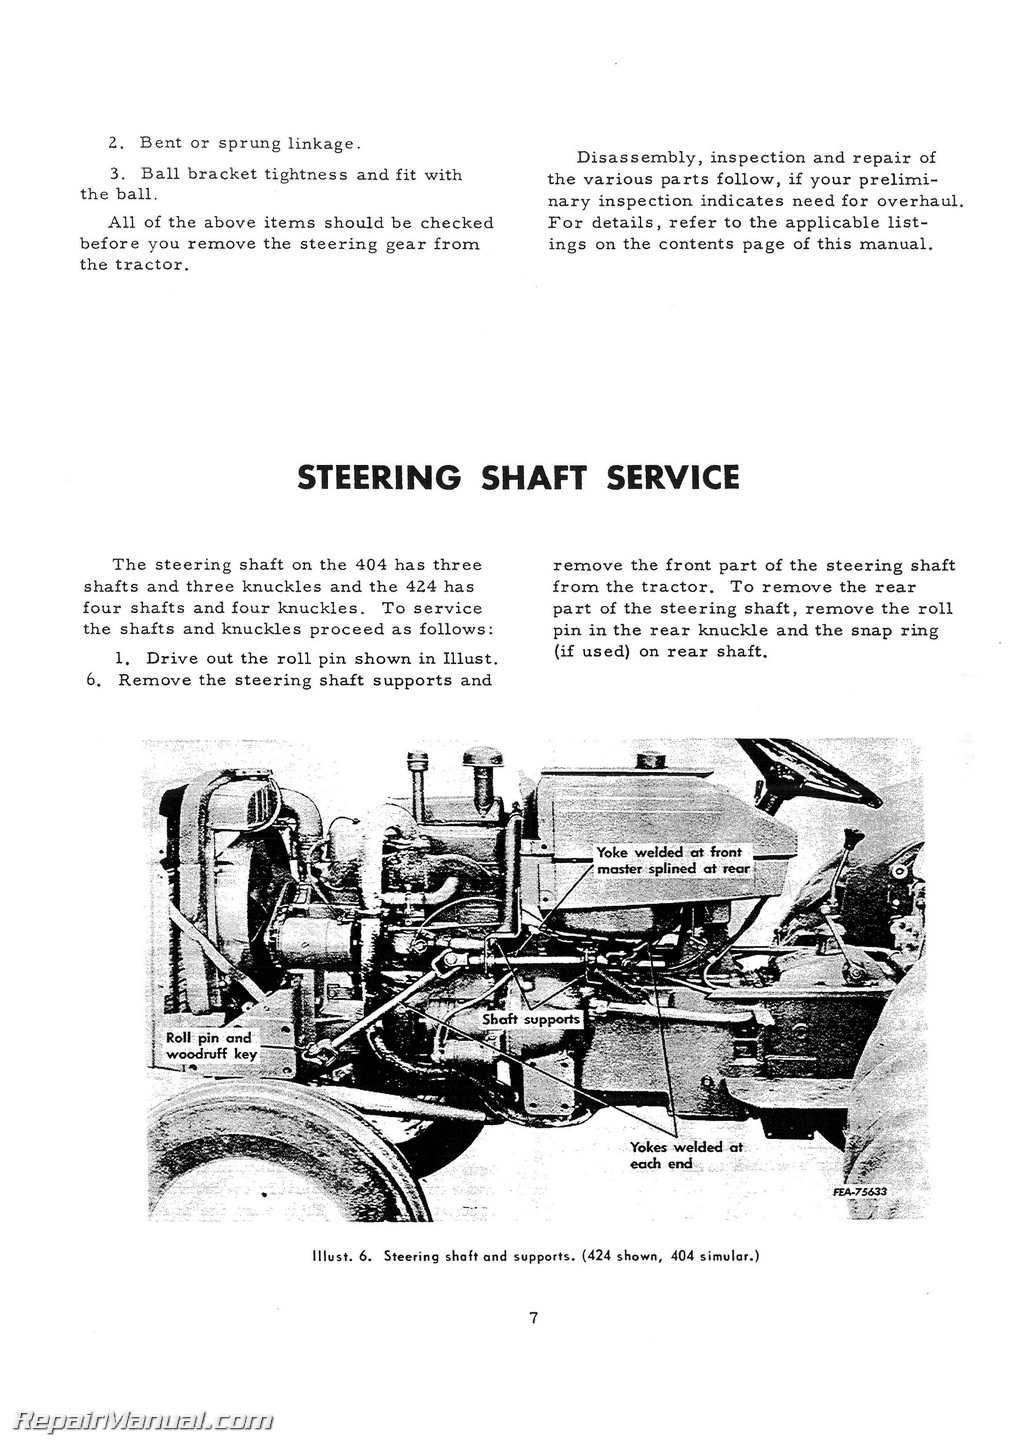 Ih 3444 Tractor Wiring Diagram List Of Schematic Circuit Sitex Transducer Colors International Harvester Loader Backhoe Service Manual Rh Repairmanual Com